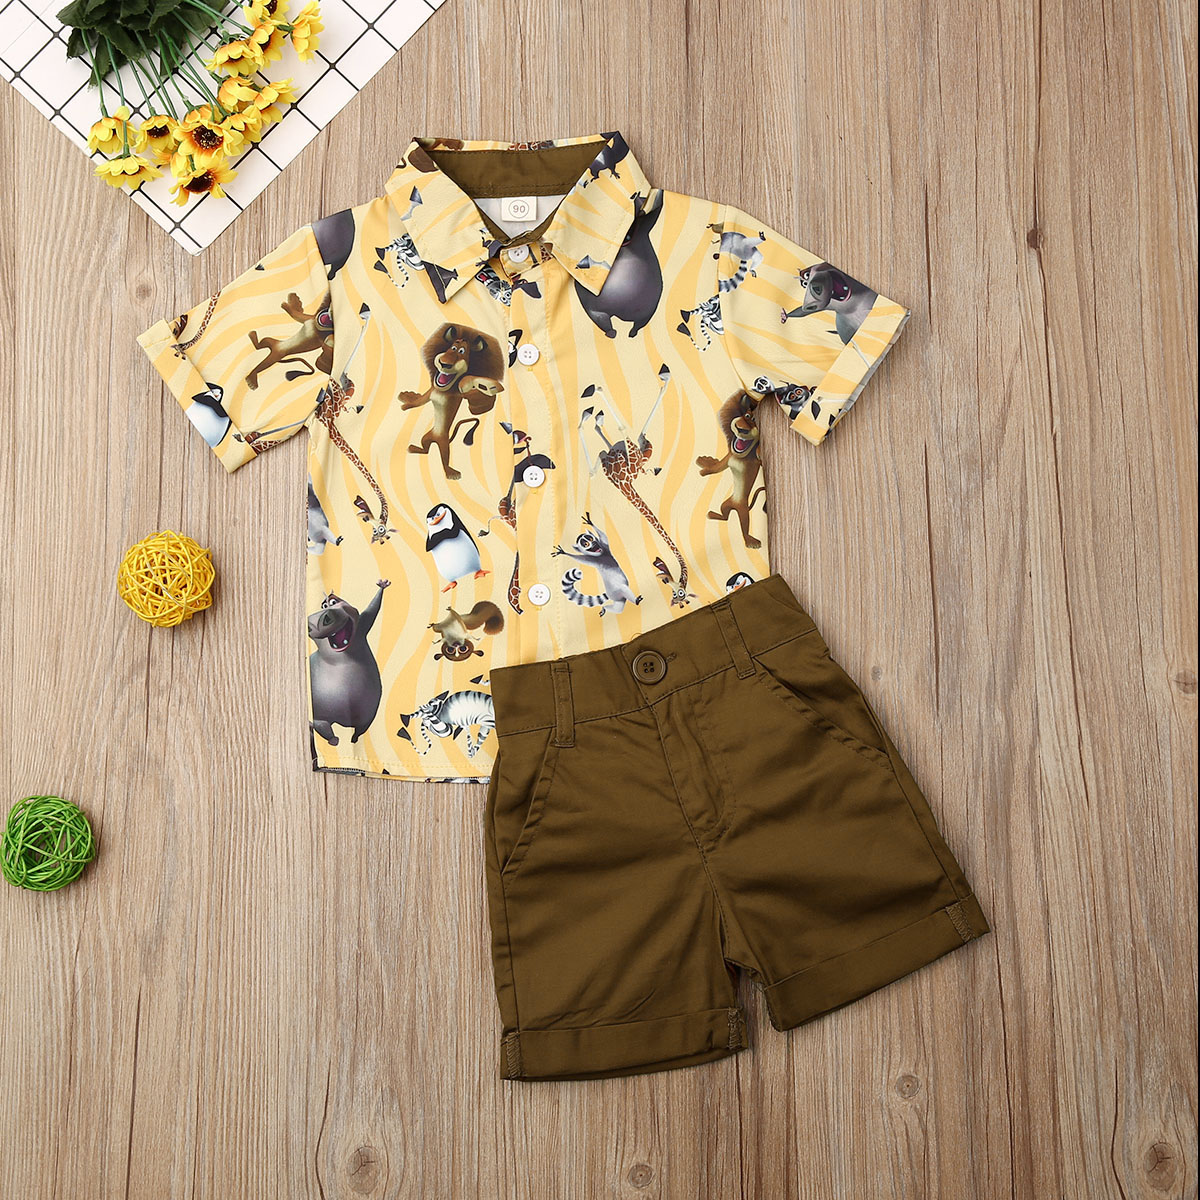 Pudcoco Summer Toddler Baby Boy Clothes Cute Animals Print Short Sleeve Shirt Tops Short Pants 2Pcs Outfits Formal Clothes